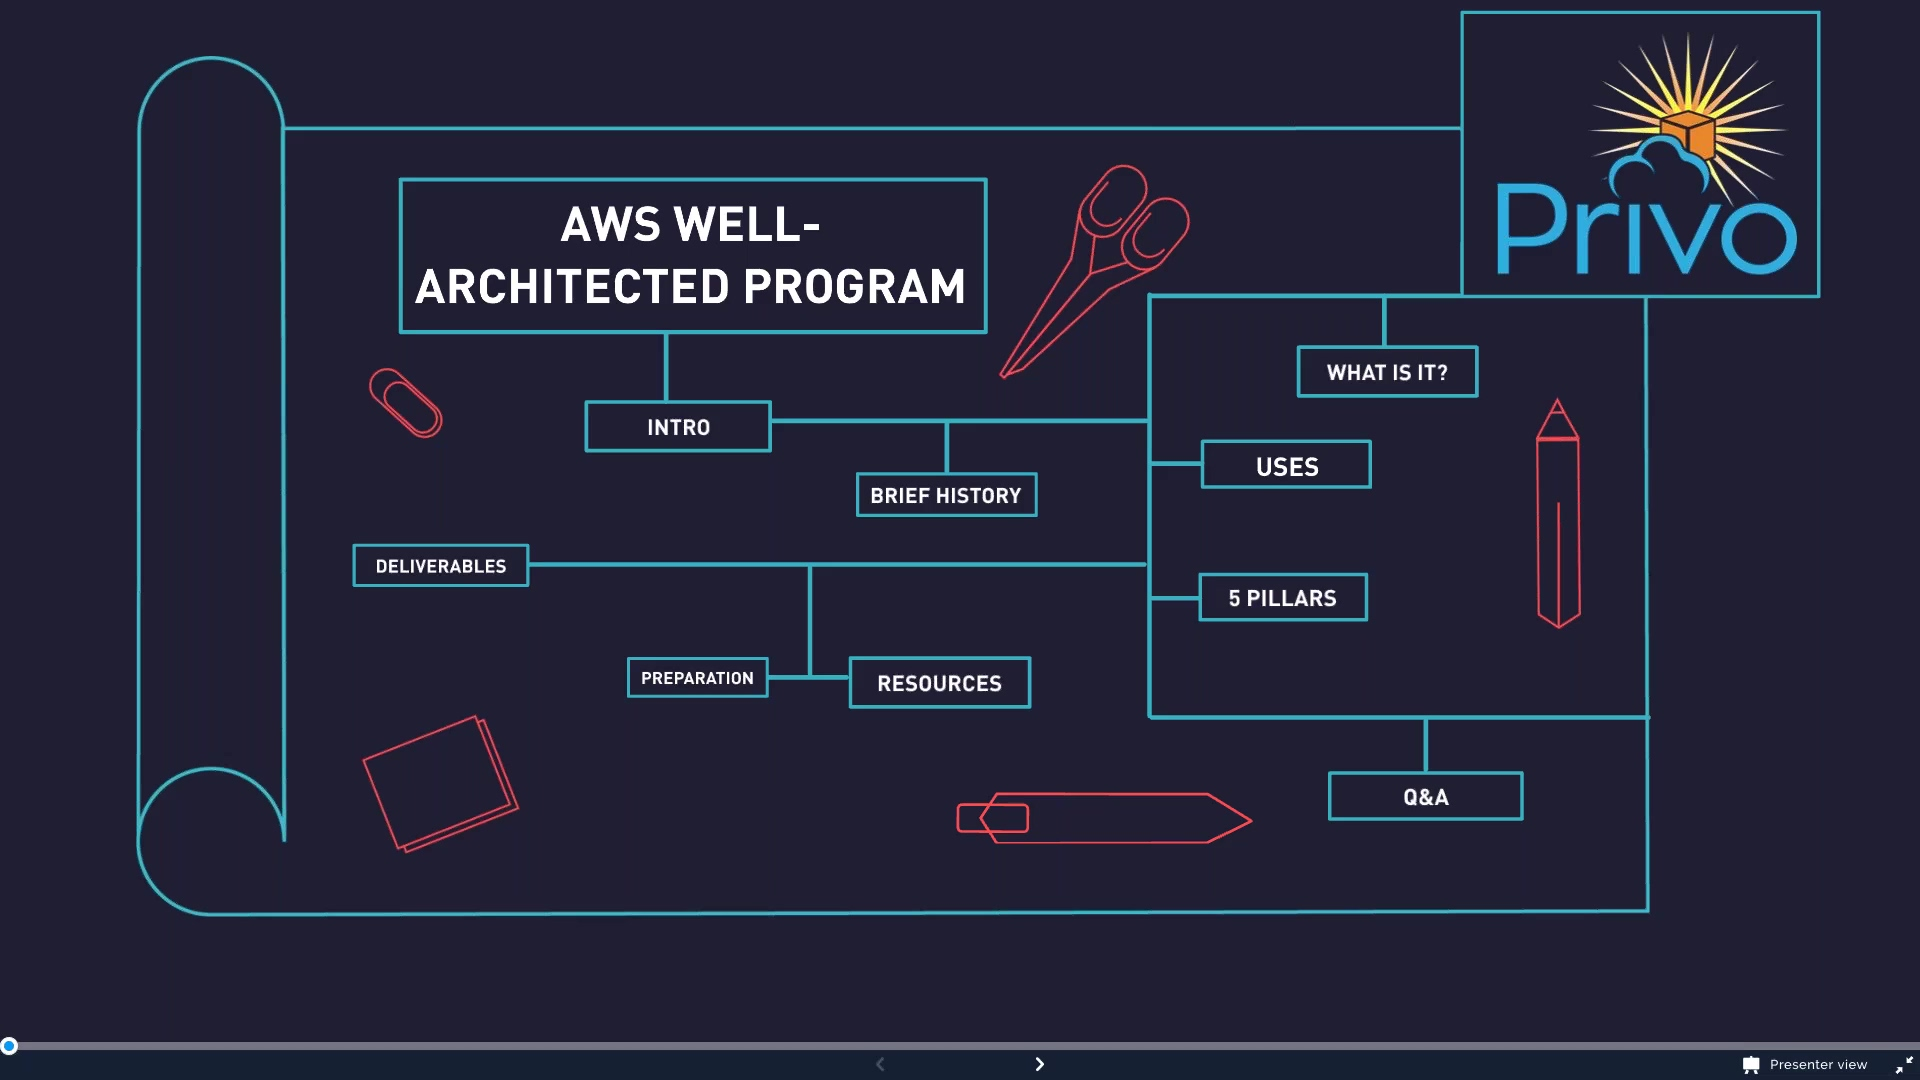 A Privo Webinar on the AWS Well-Architected Review Program (1)